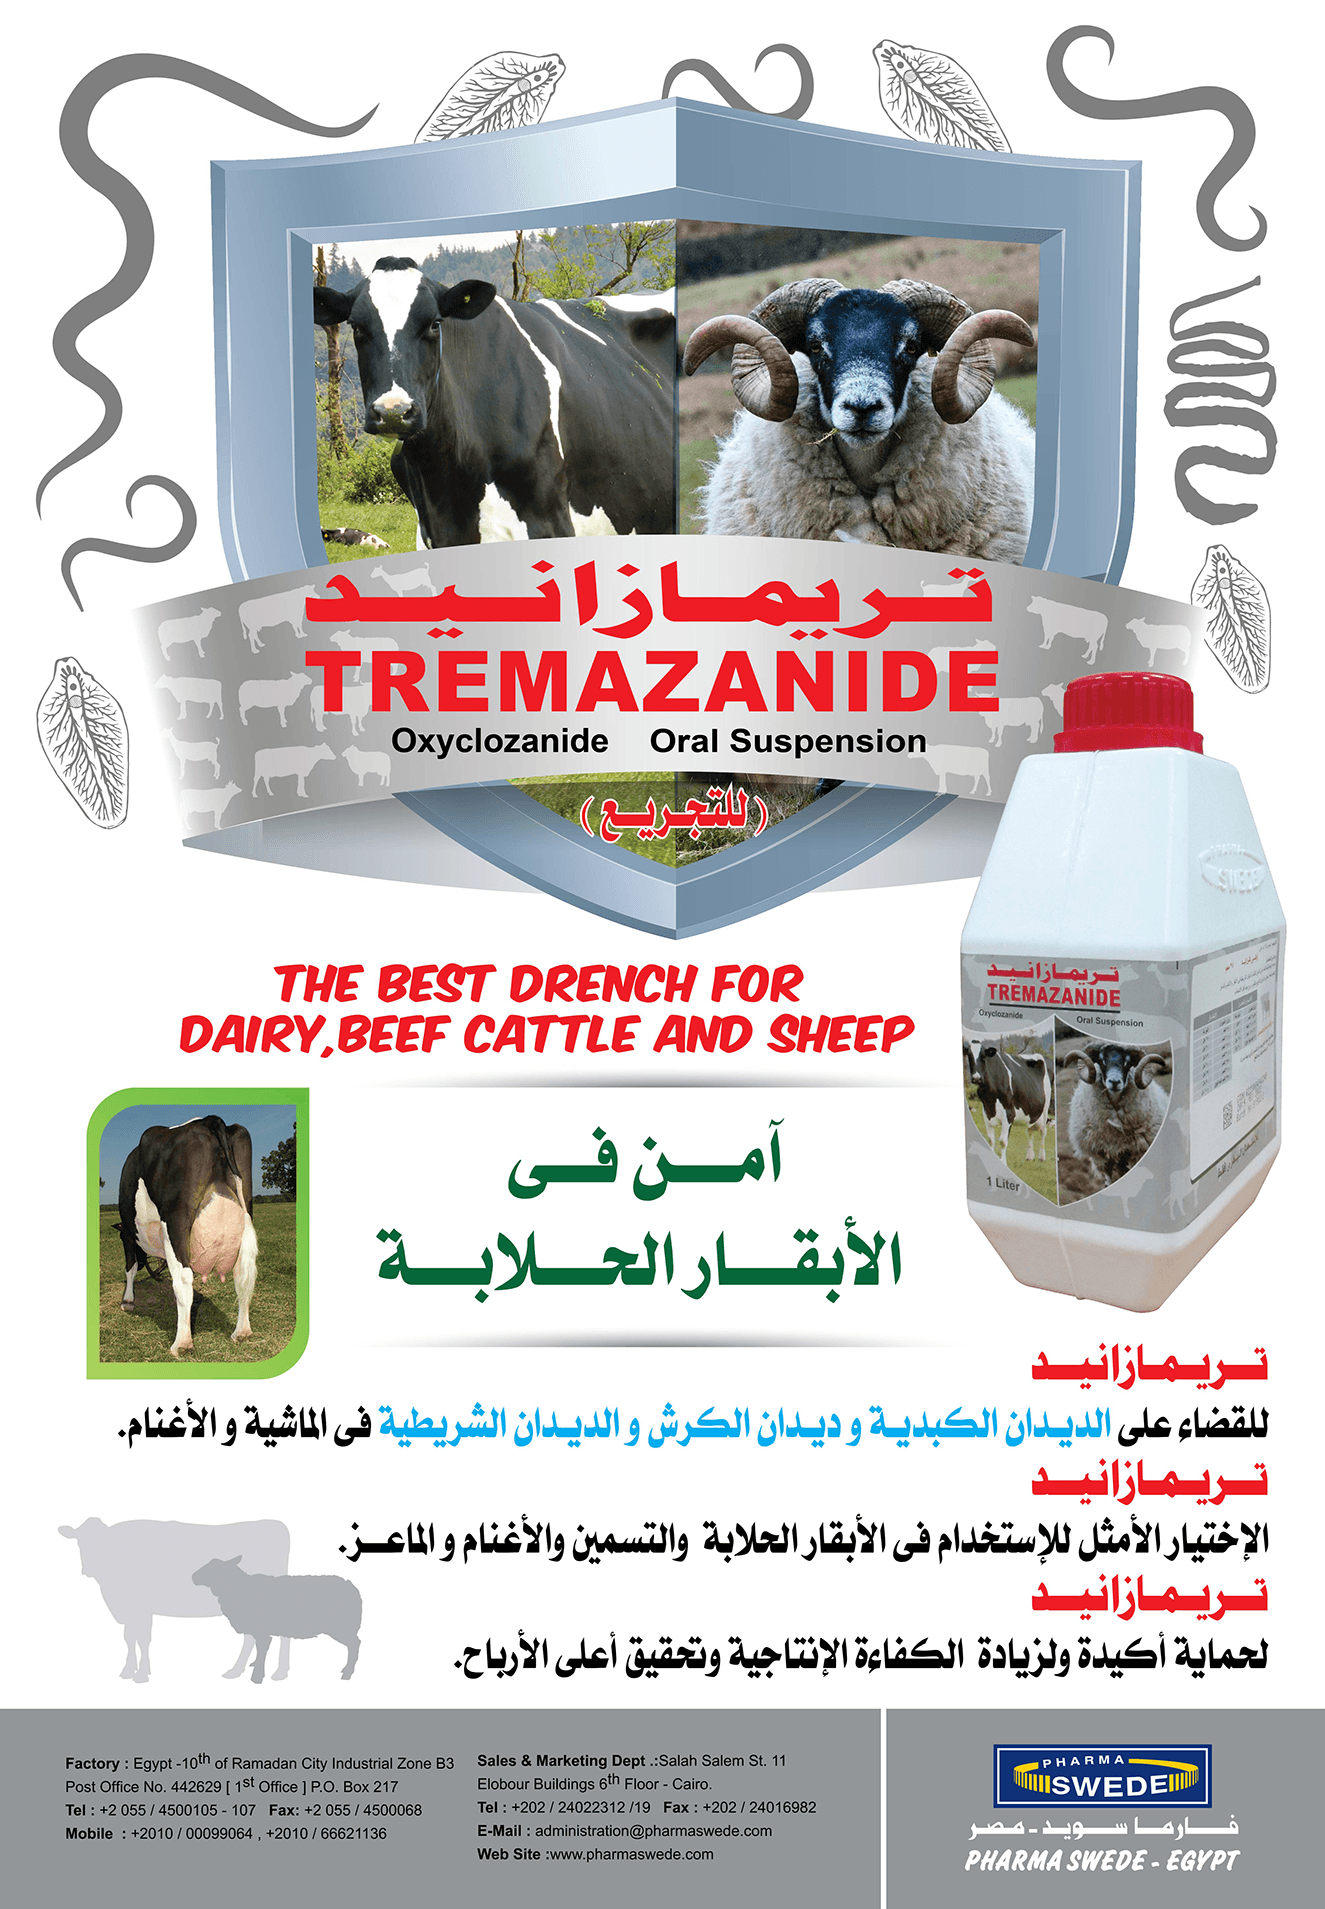 New Product: Tremazanide